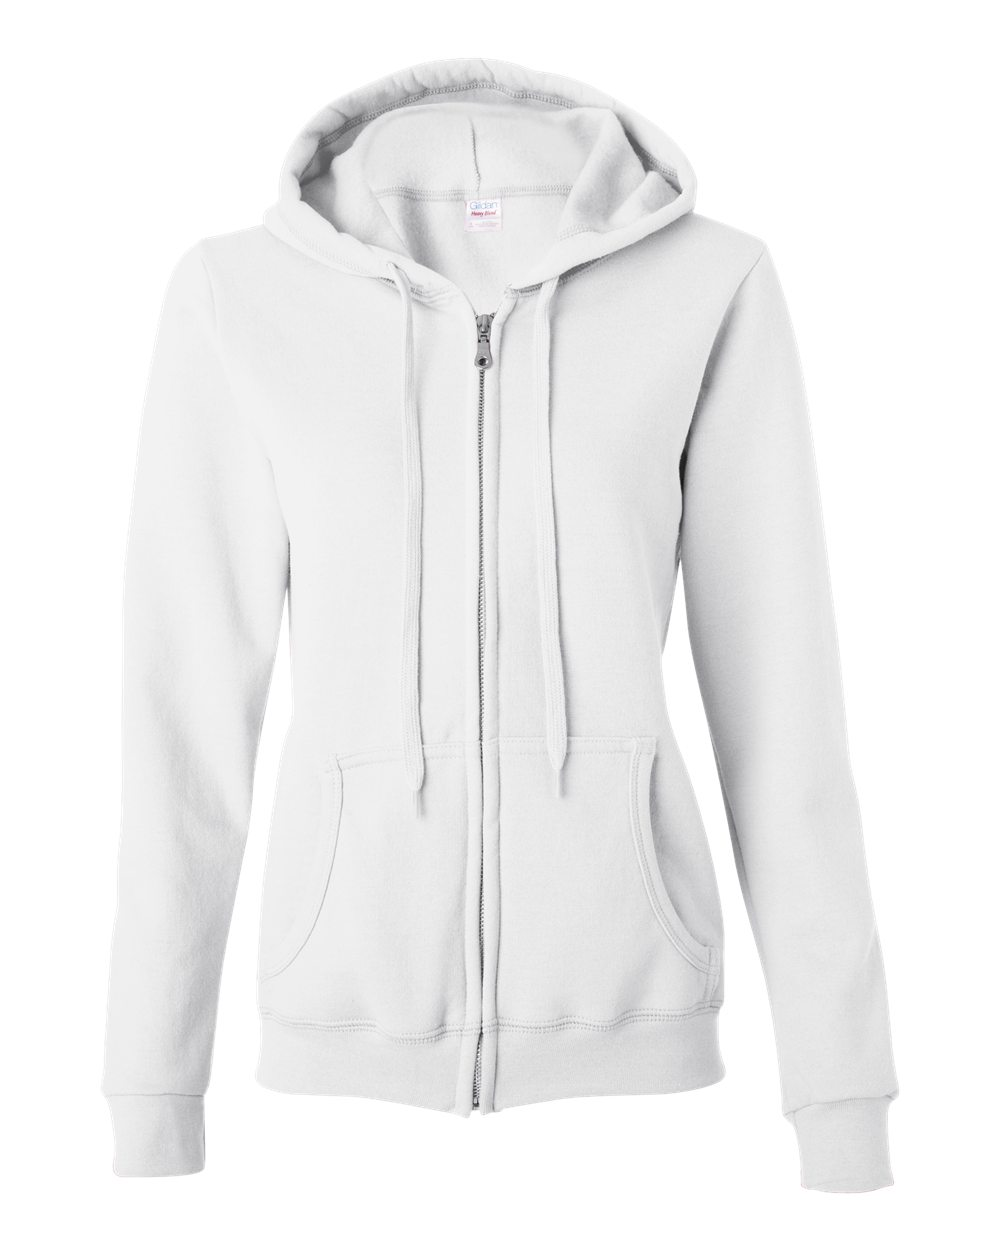 Gildan Heavy Blend Ladies Missy Fit Full-zip Hooded Sweatshirt ...